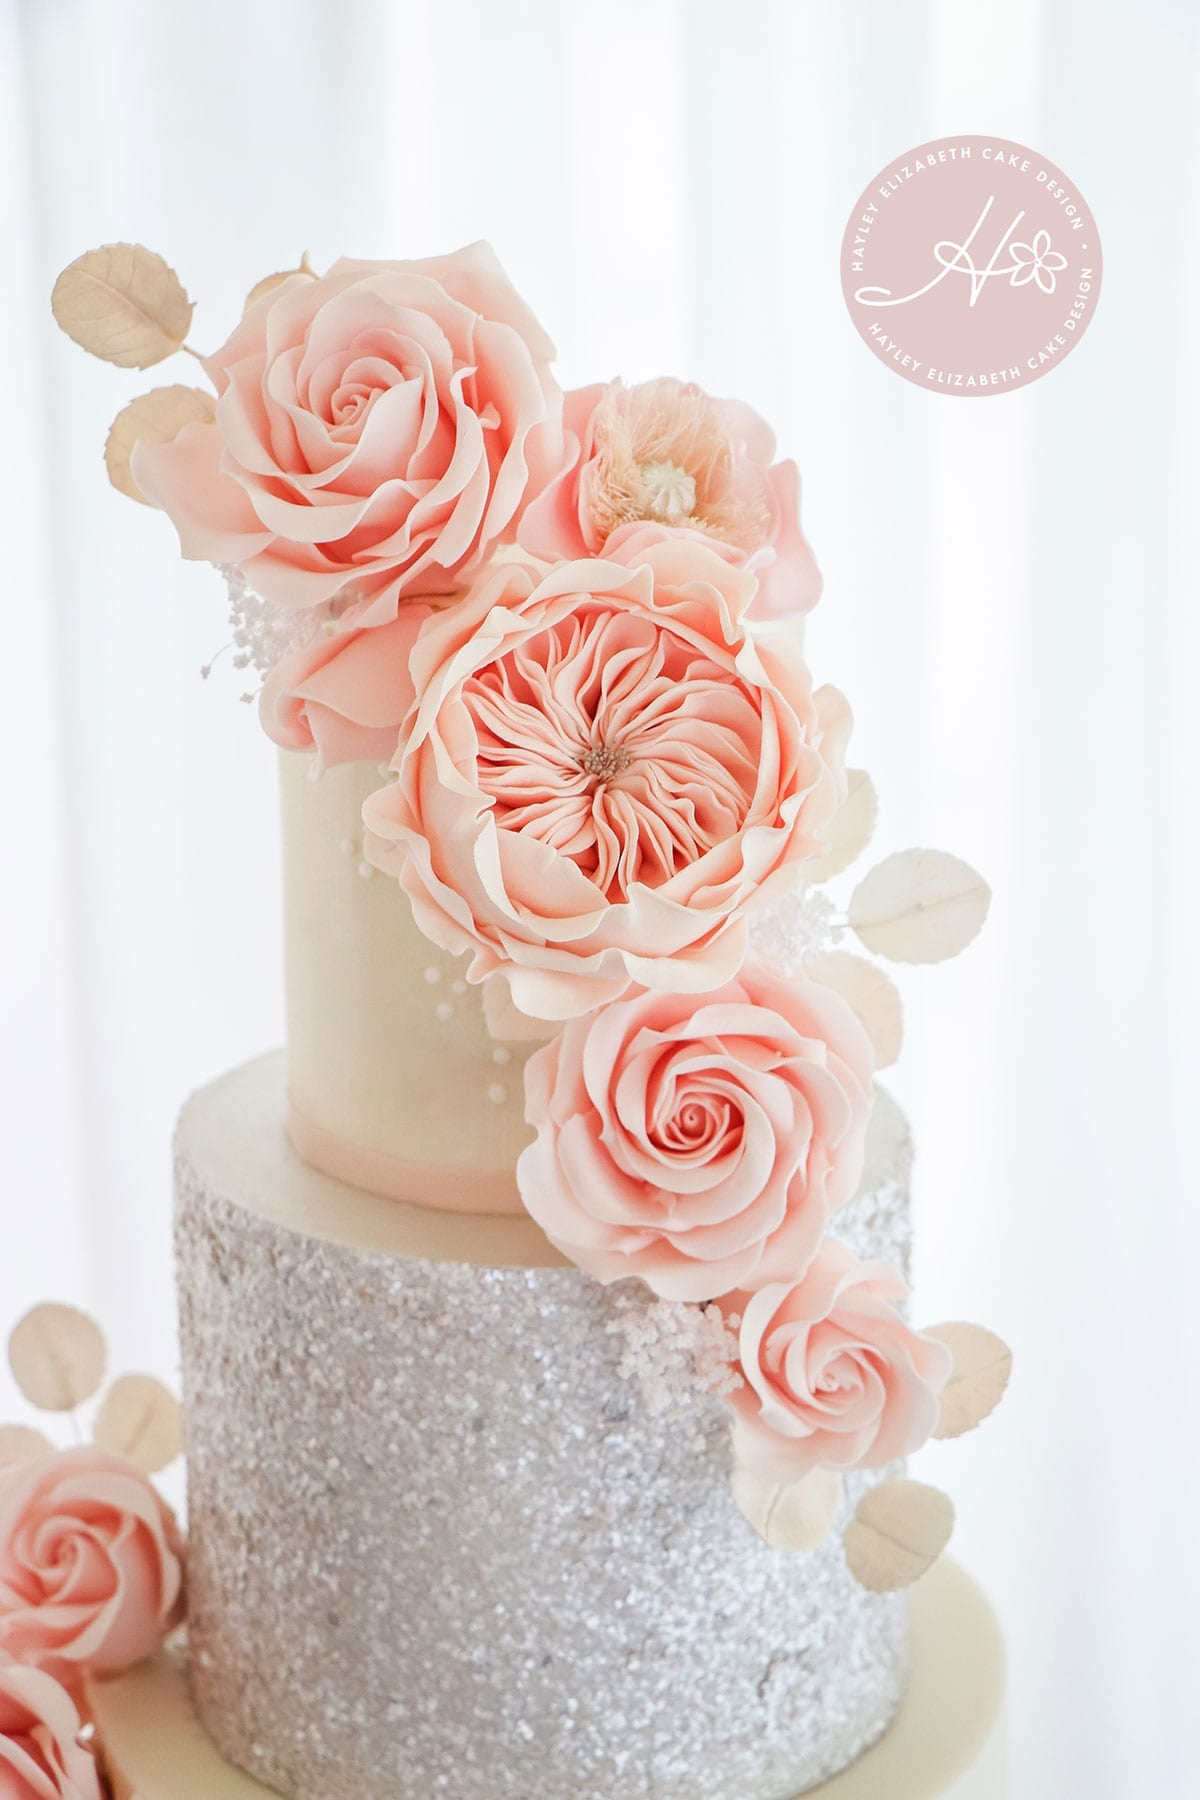 Blush sugar flowers, luxury wedding cake from Hayley Elizabeth Cake Design, Dorset and Hampshire cake designer. White and blush wedding cake, silver sequin wedding cake, sugar flowers, white silver pink wedding cake, white wedding cake, elegant wedding cake, wedding cake ideas.